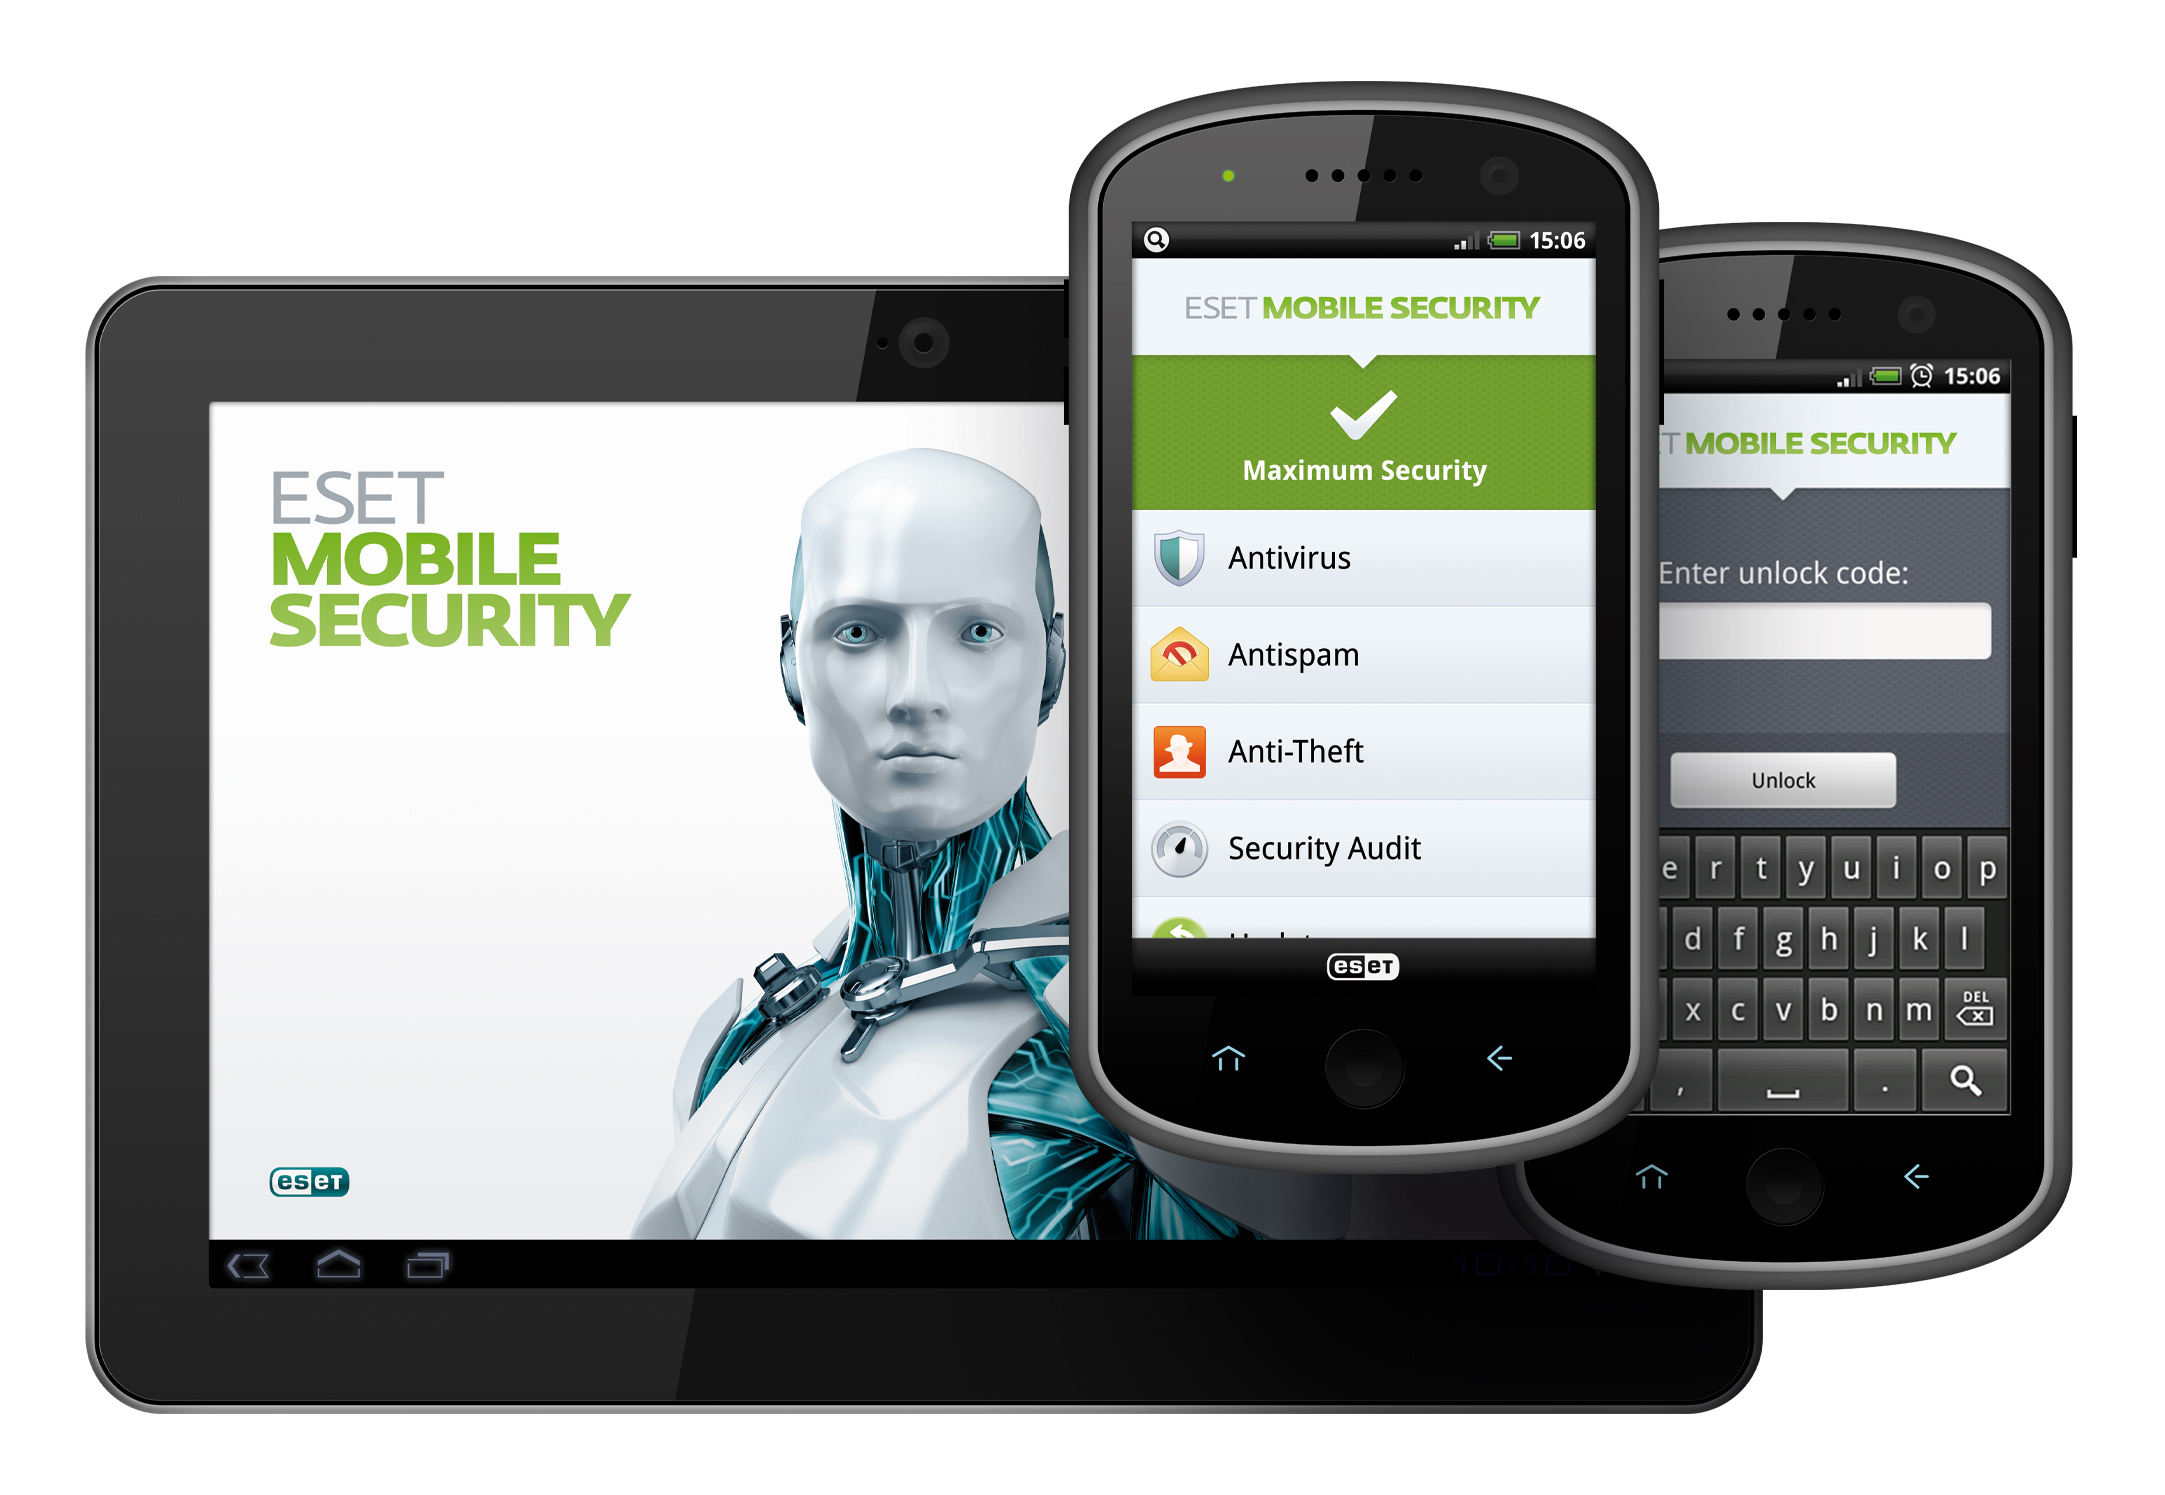 Camera Security For Android Phones download free eset mobile security for android with anti theft android